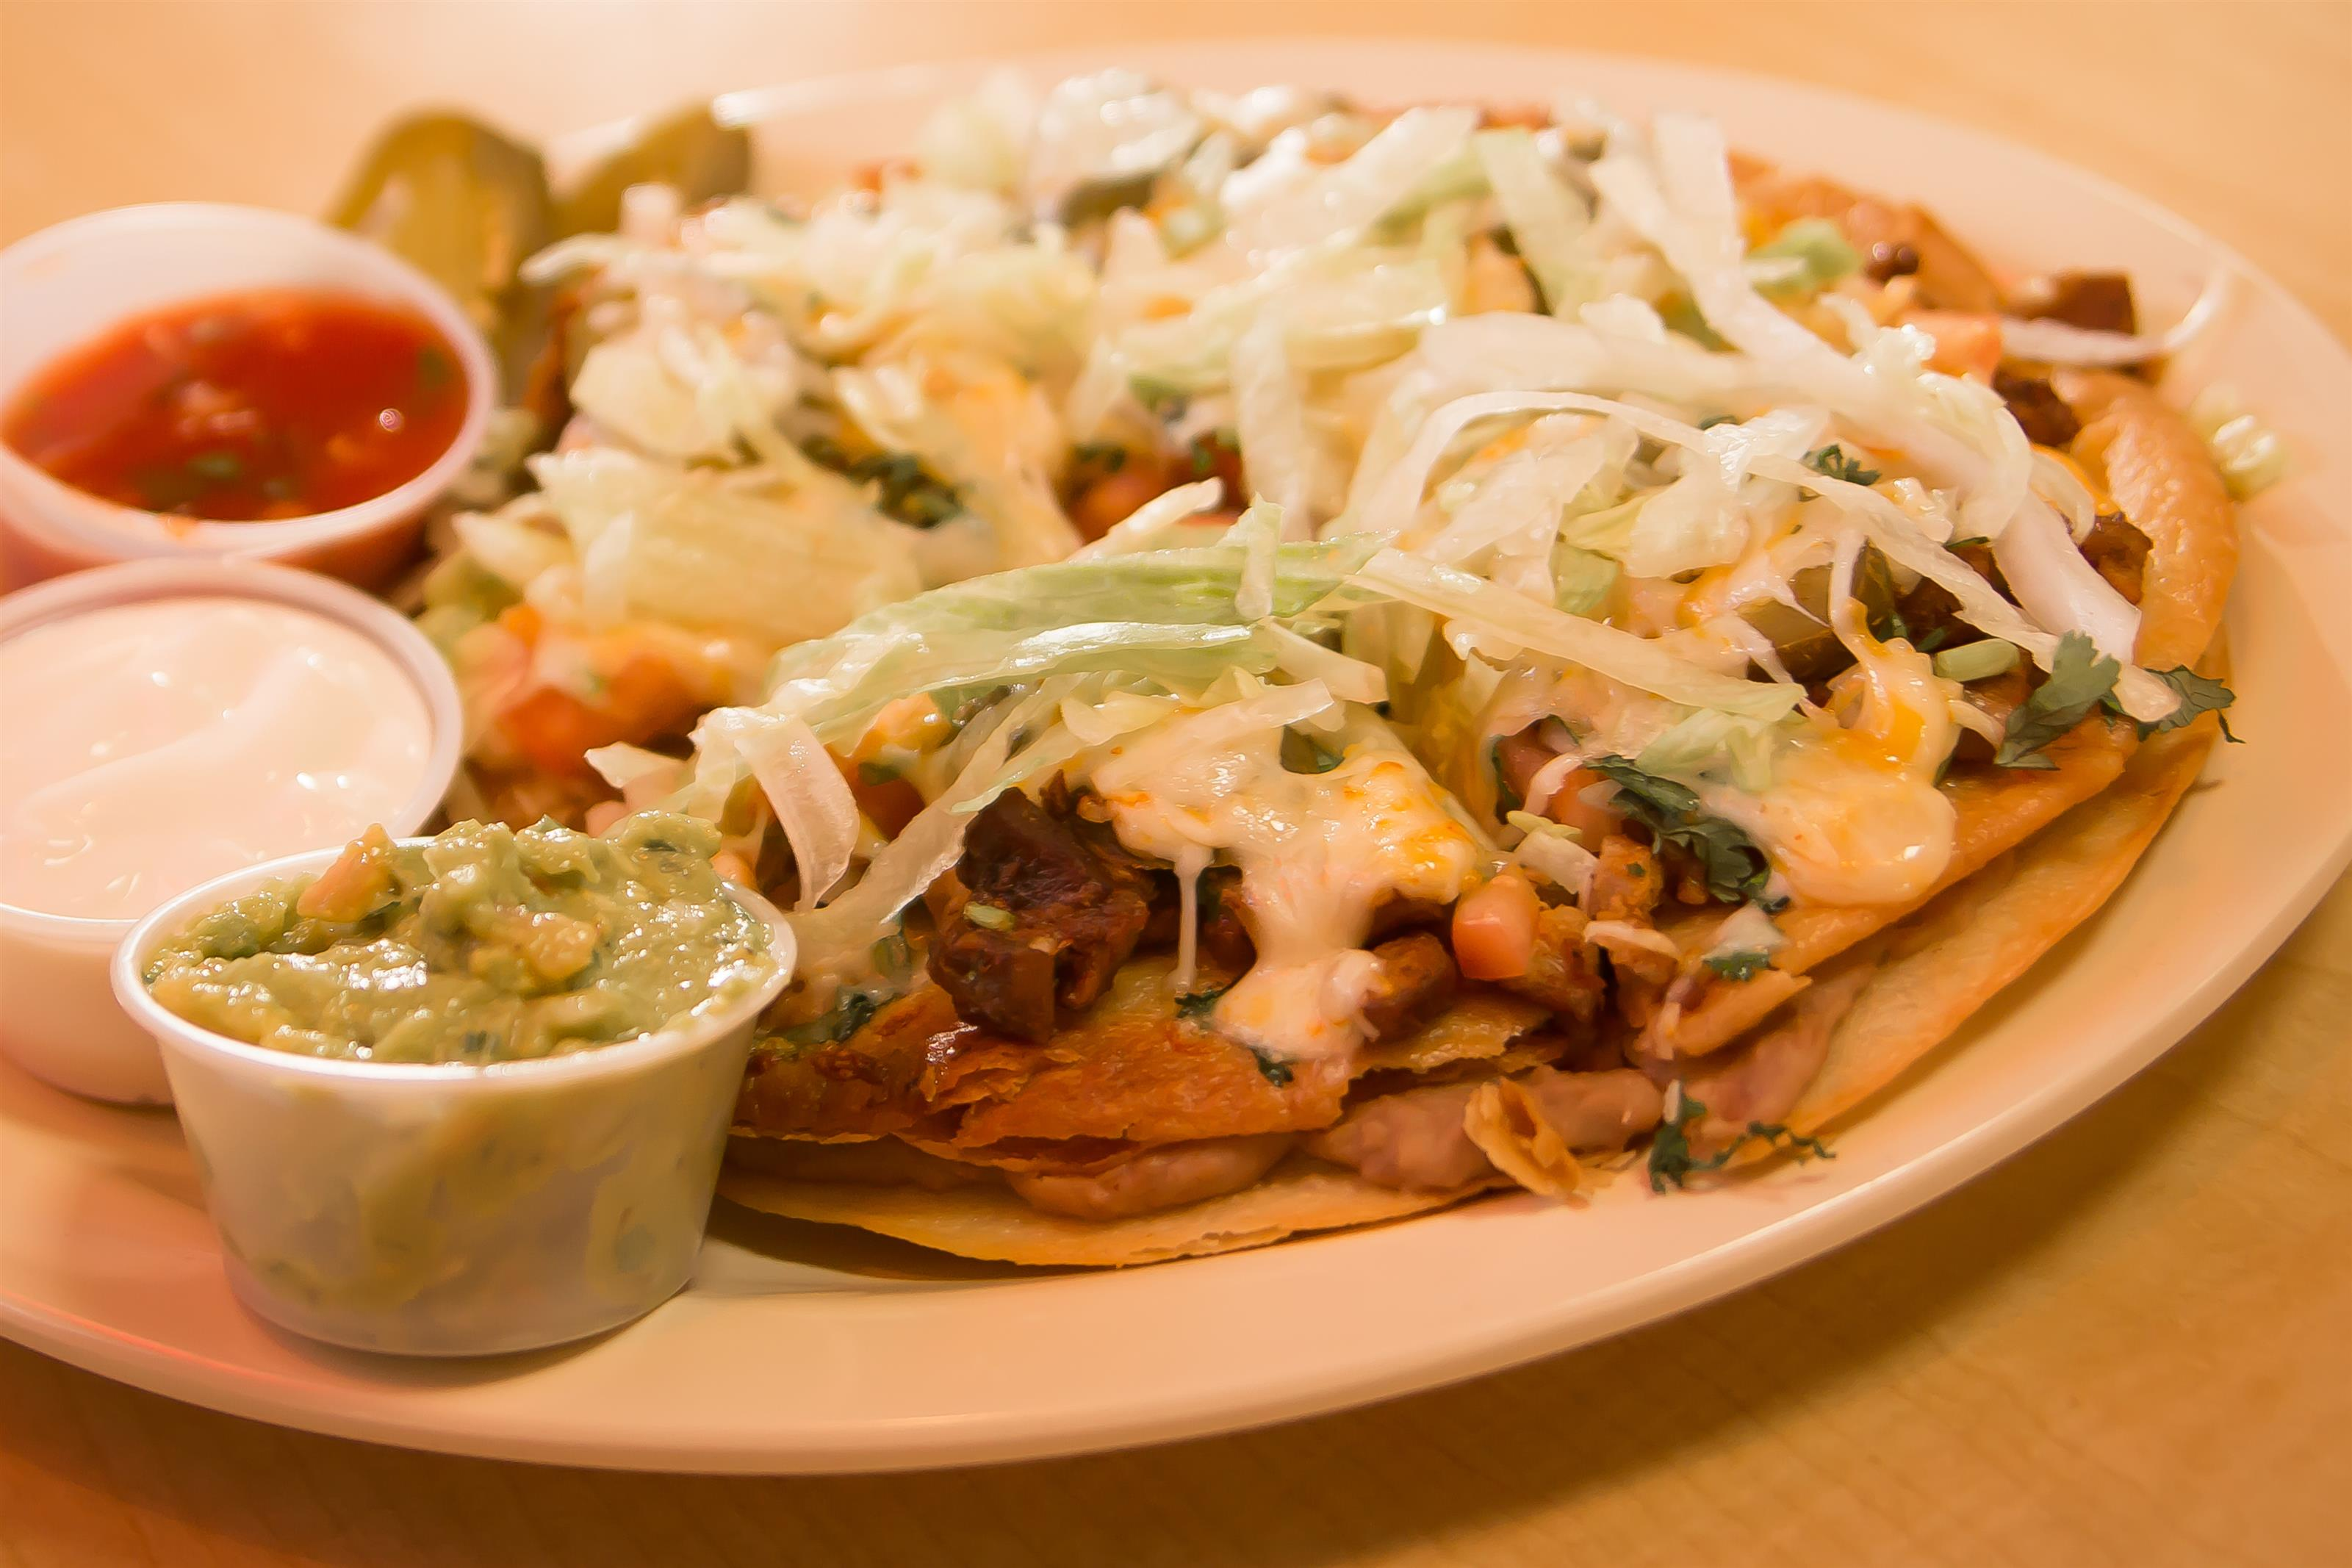 Chicken quesadilla topped with cheese, lettuce, jalapenos. Side of guacamole, salsa, ranch.